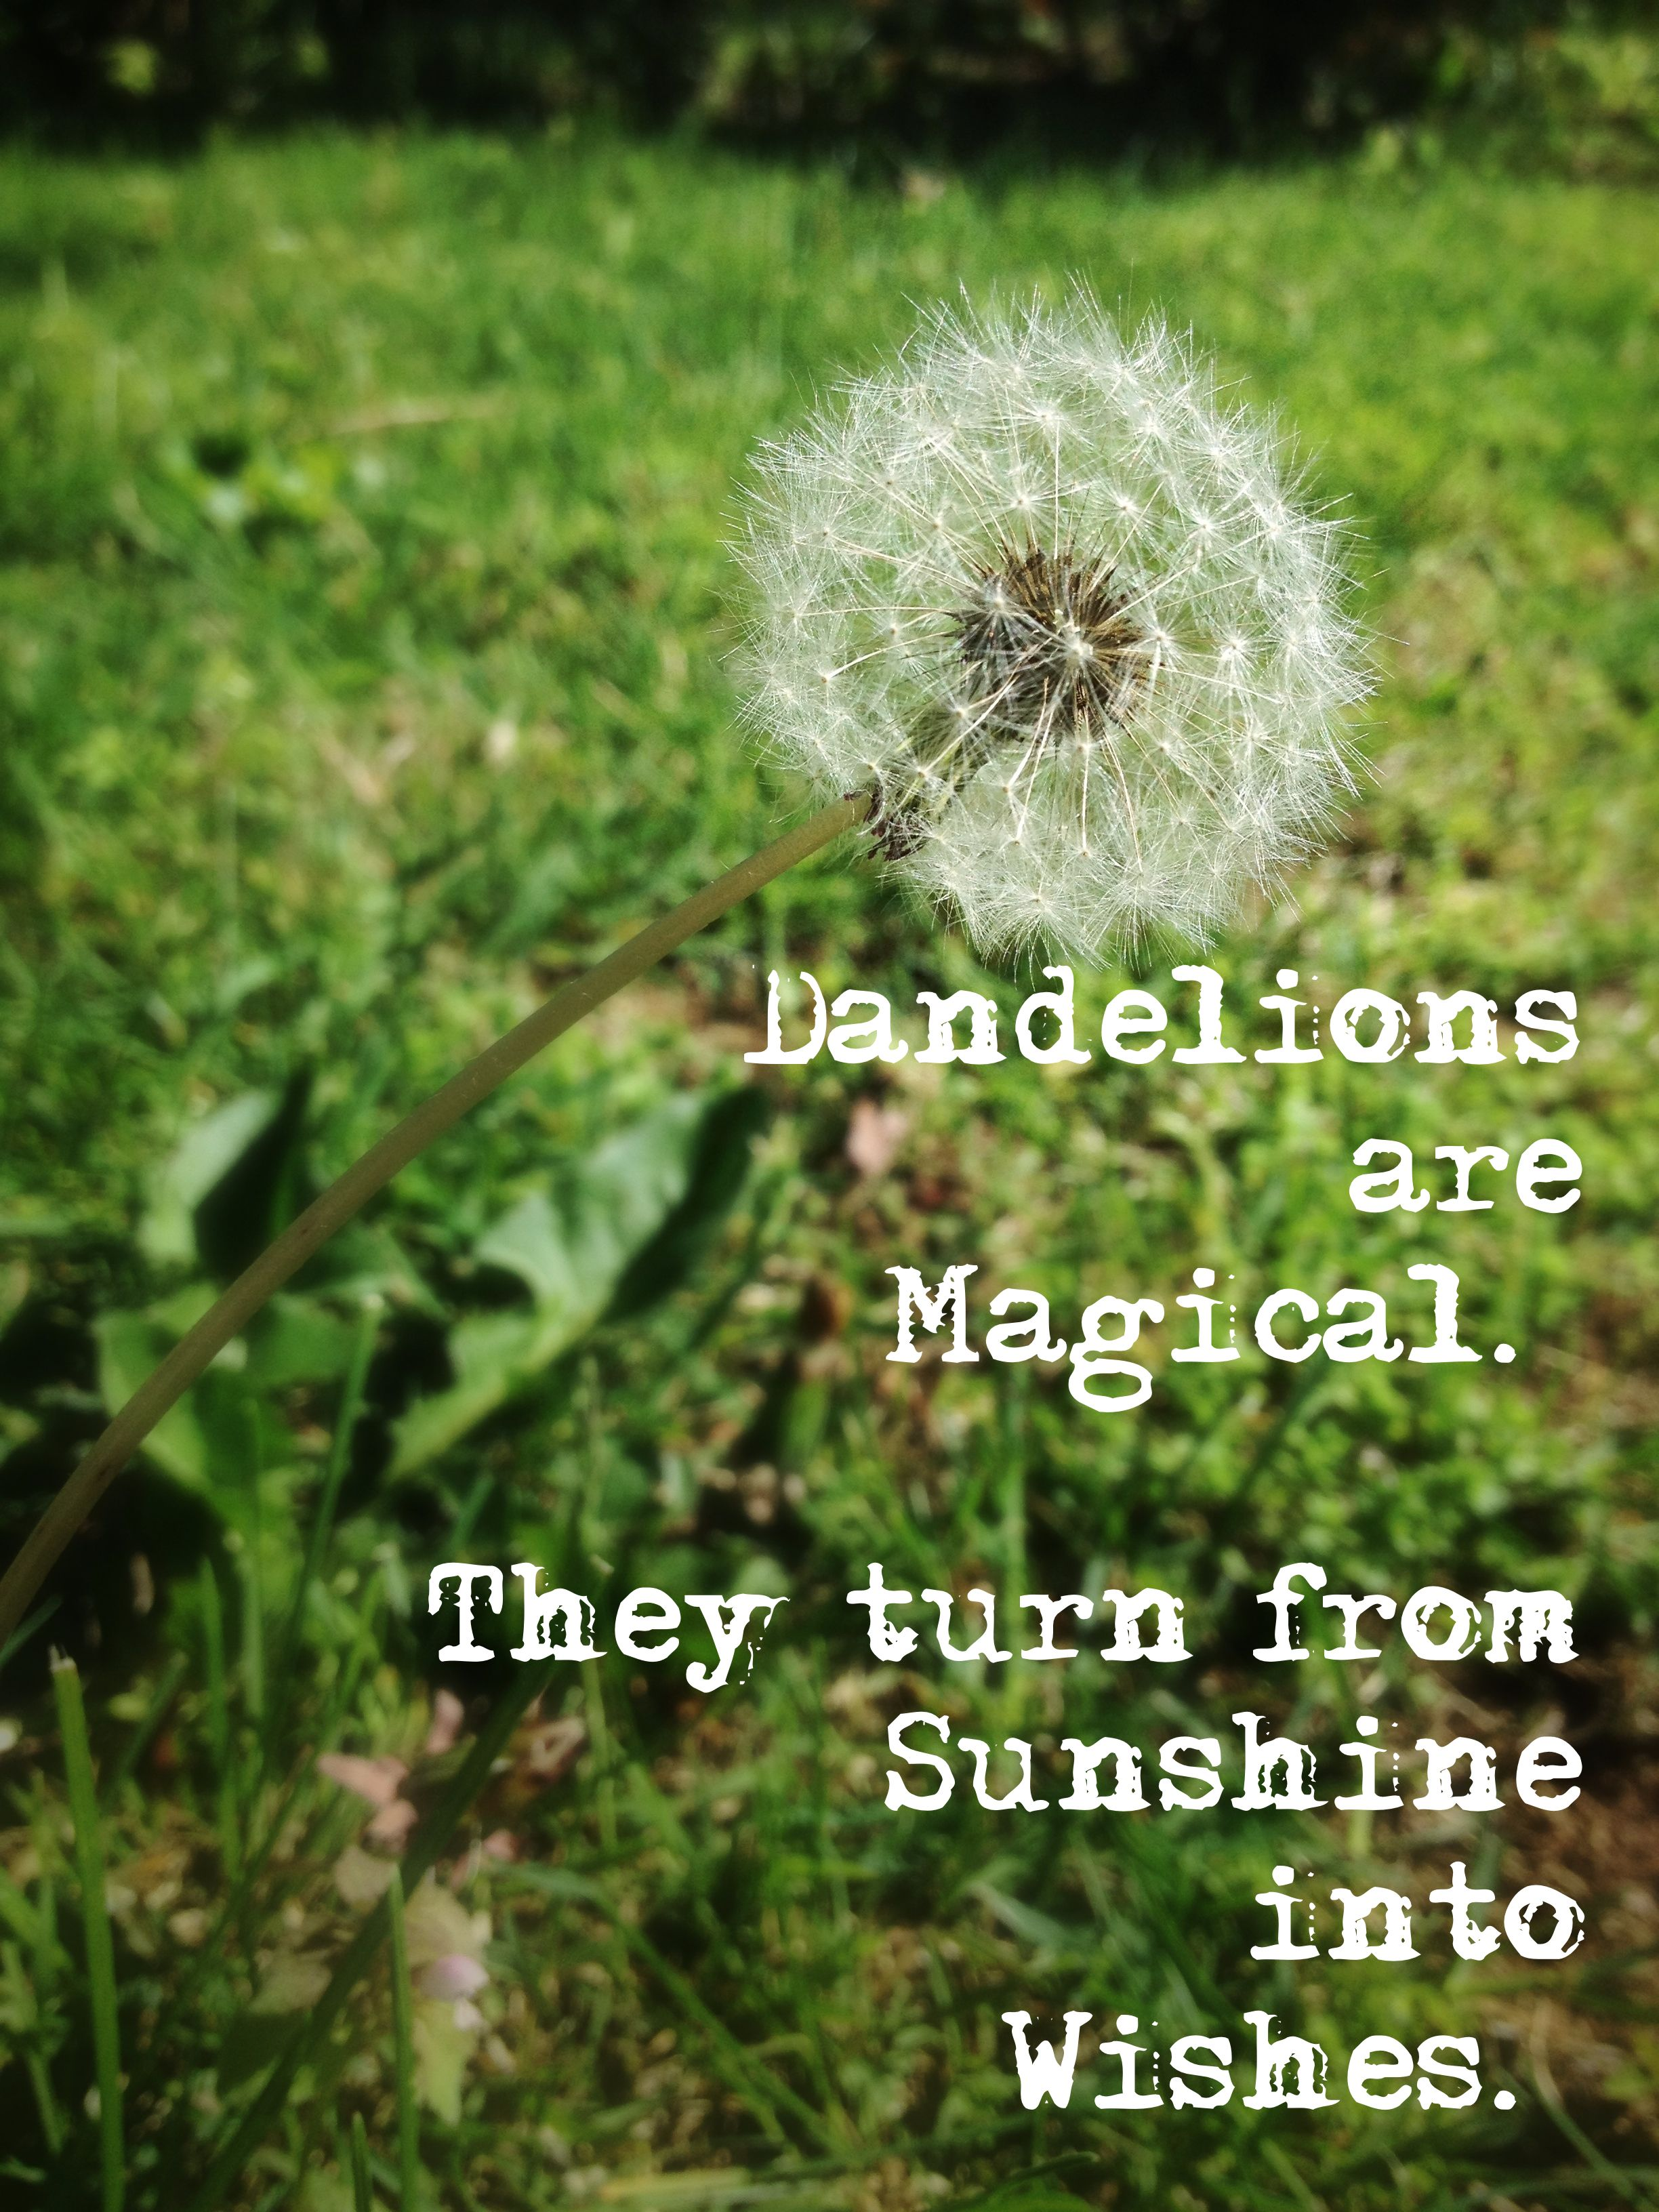 Dandelions are magical they turn from sunshine into